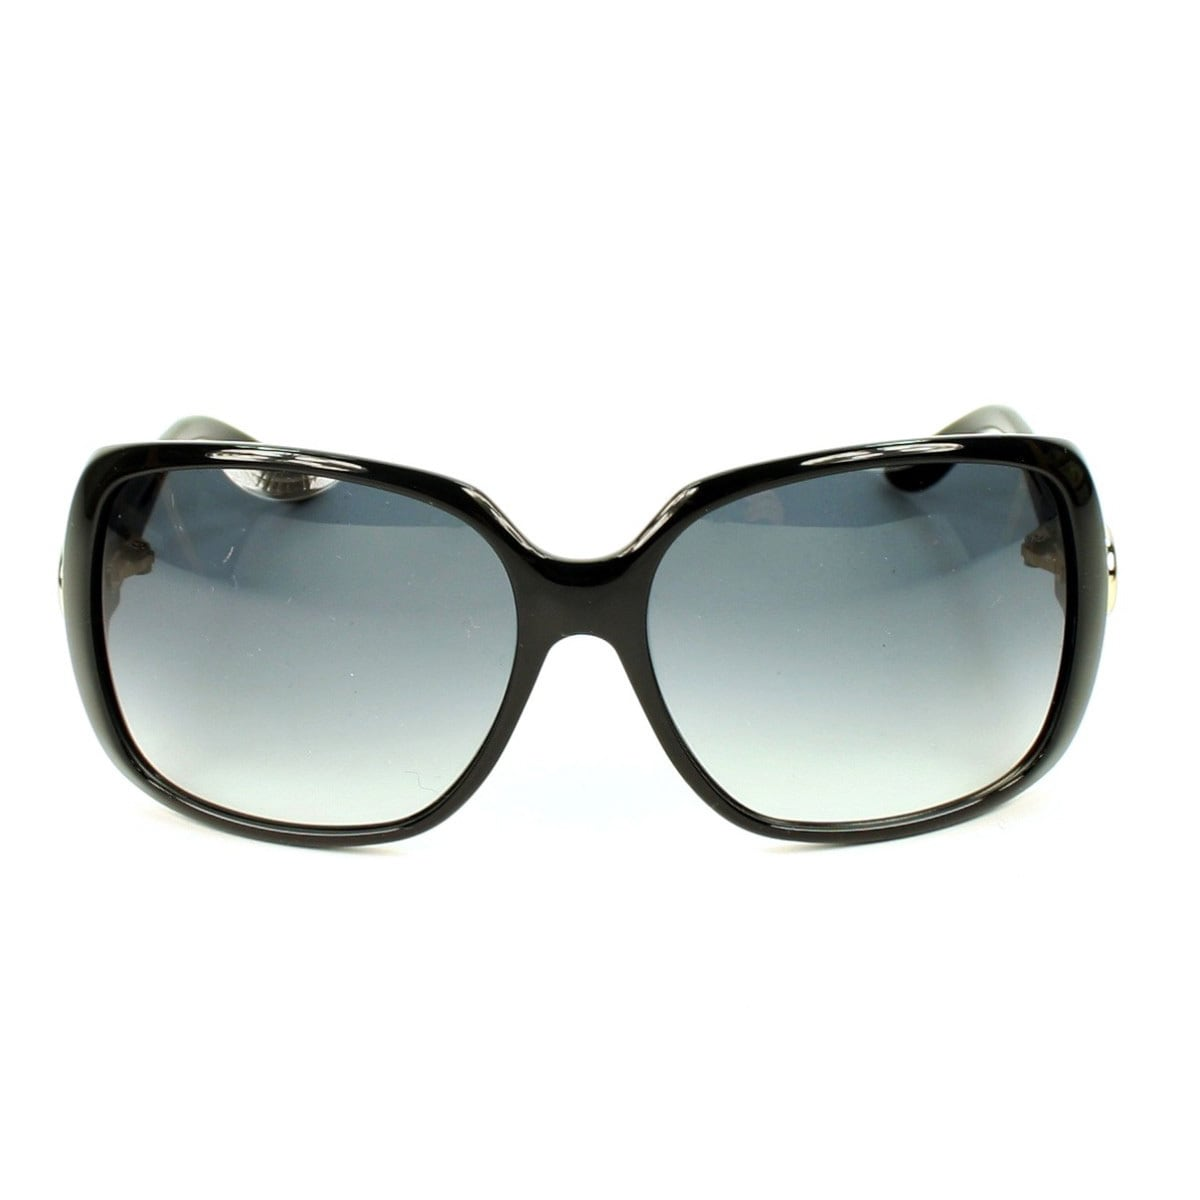 a739e59a4d8 Shop Gucci Women s GG 3166 S Shiny Black Plastic Rectangular Sunglasses -  Large - Free Shipping Today - Overstock - 10045832